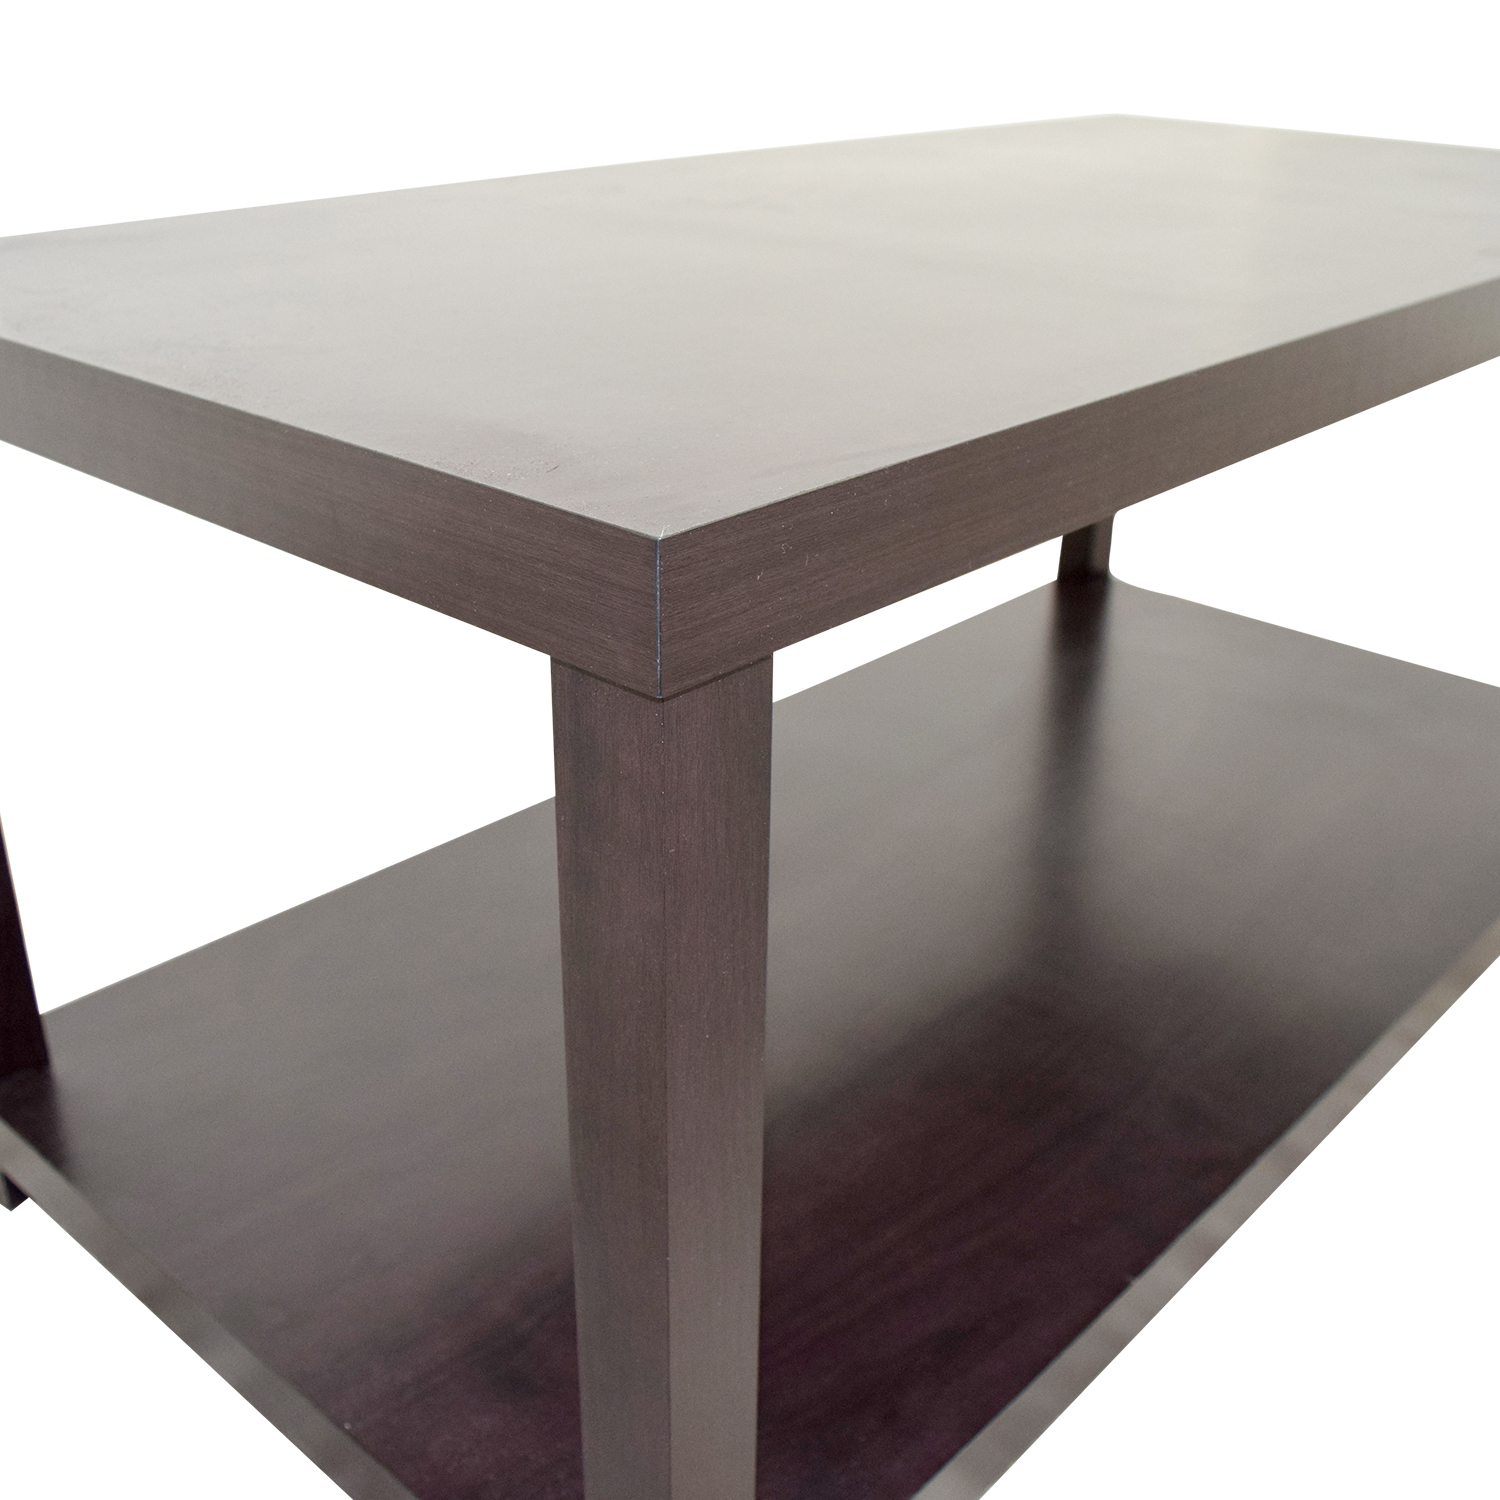 71% OFF Acme Acme Wood Espresso Coffee Table Tables